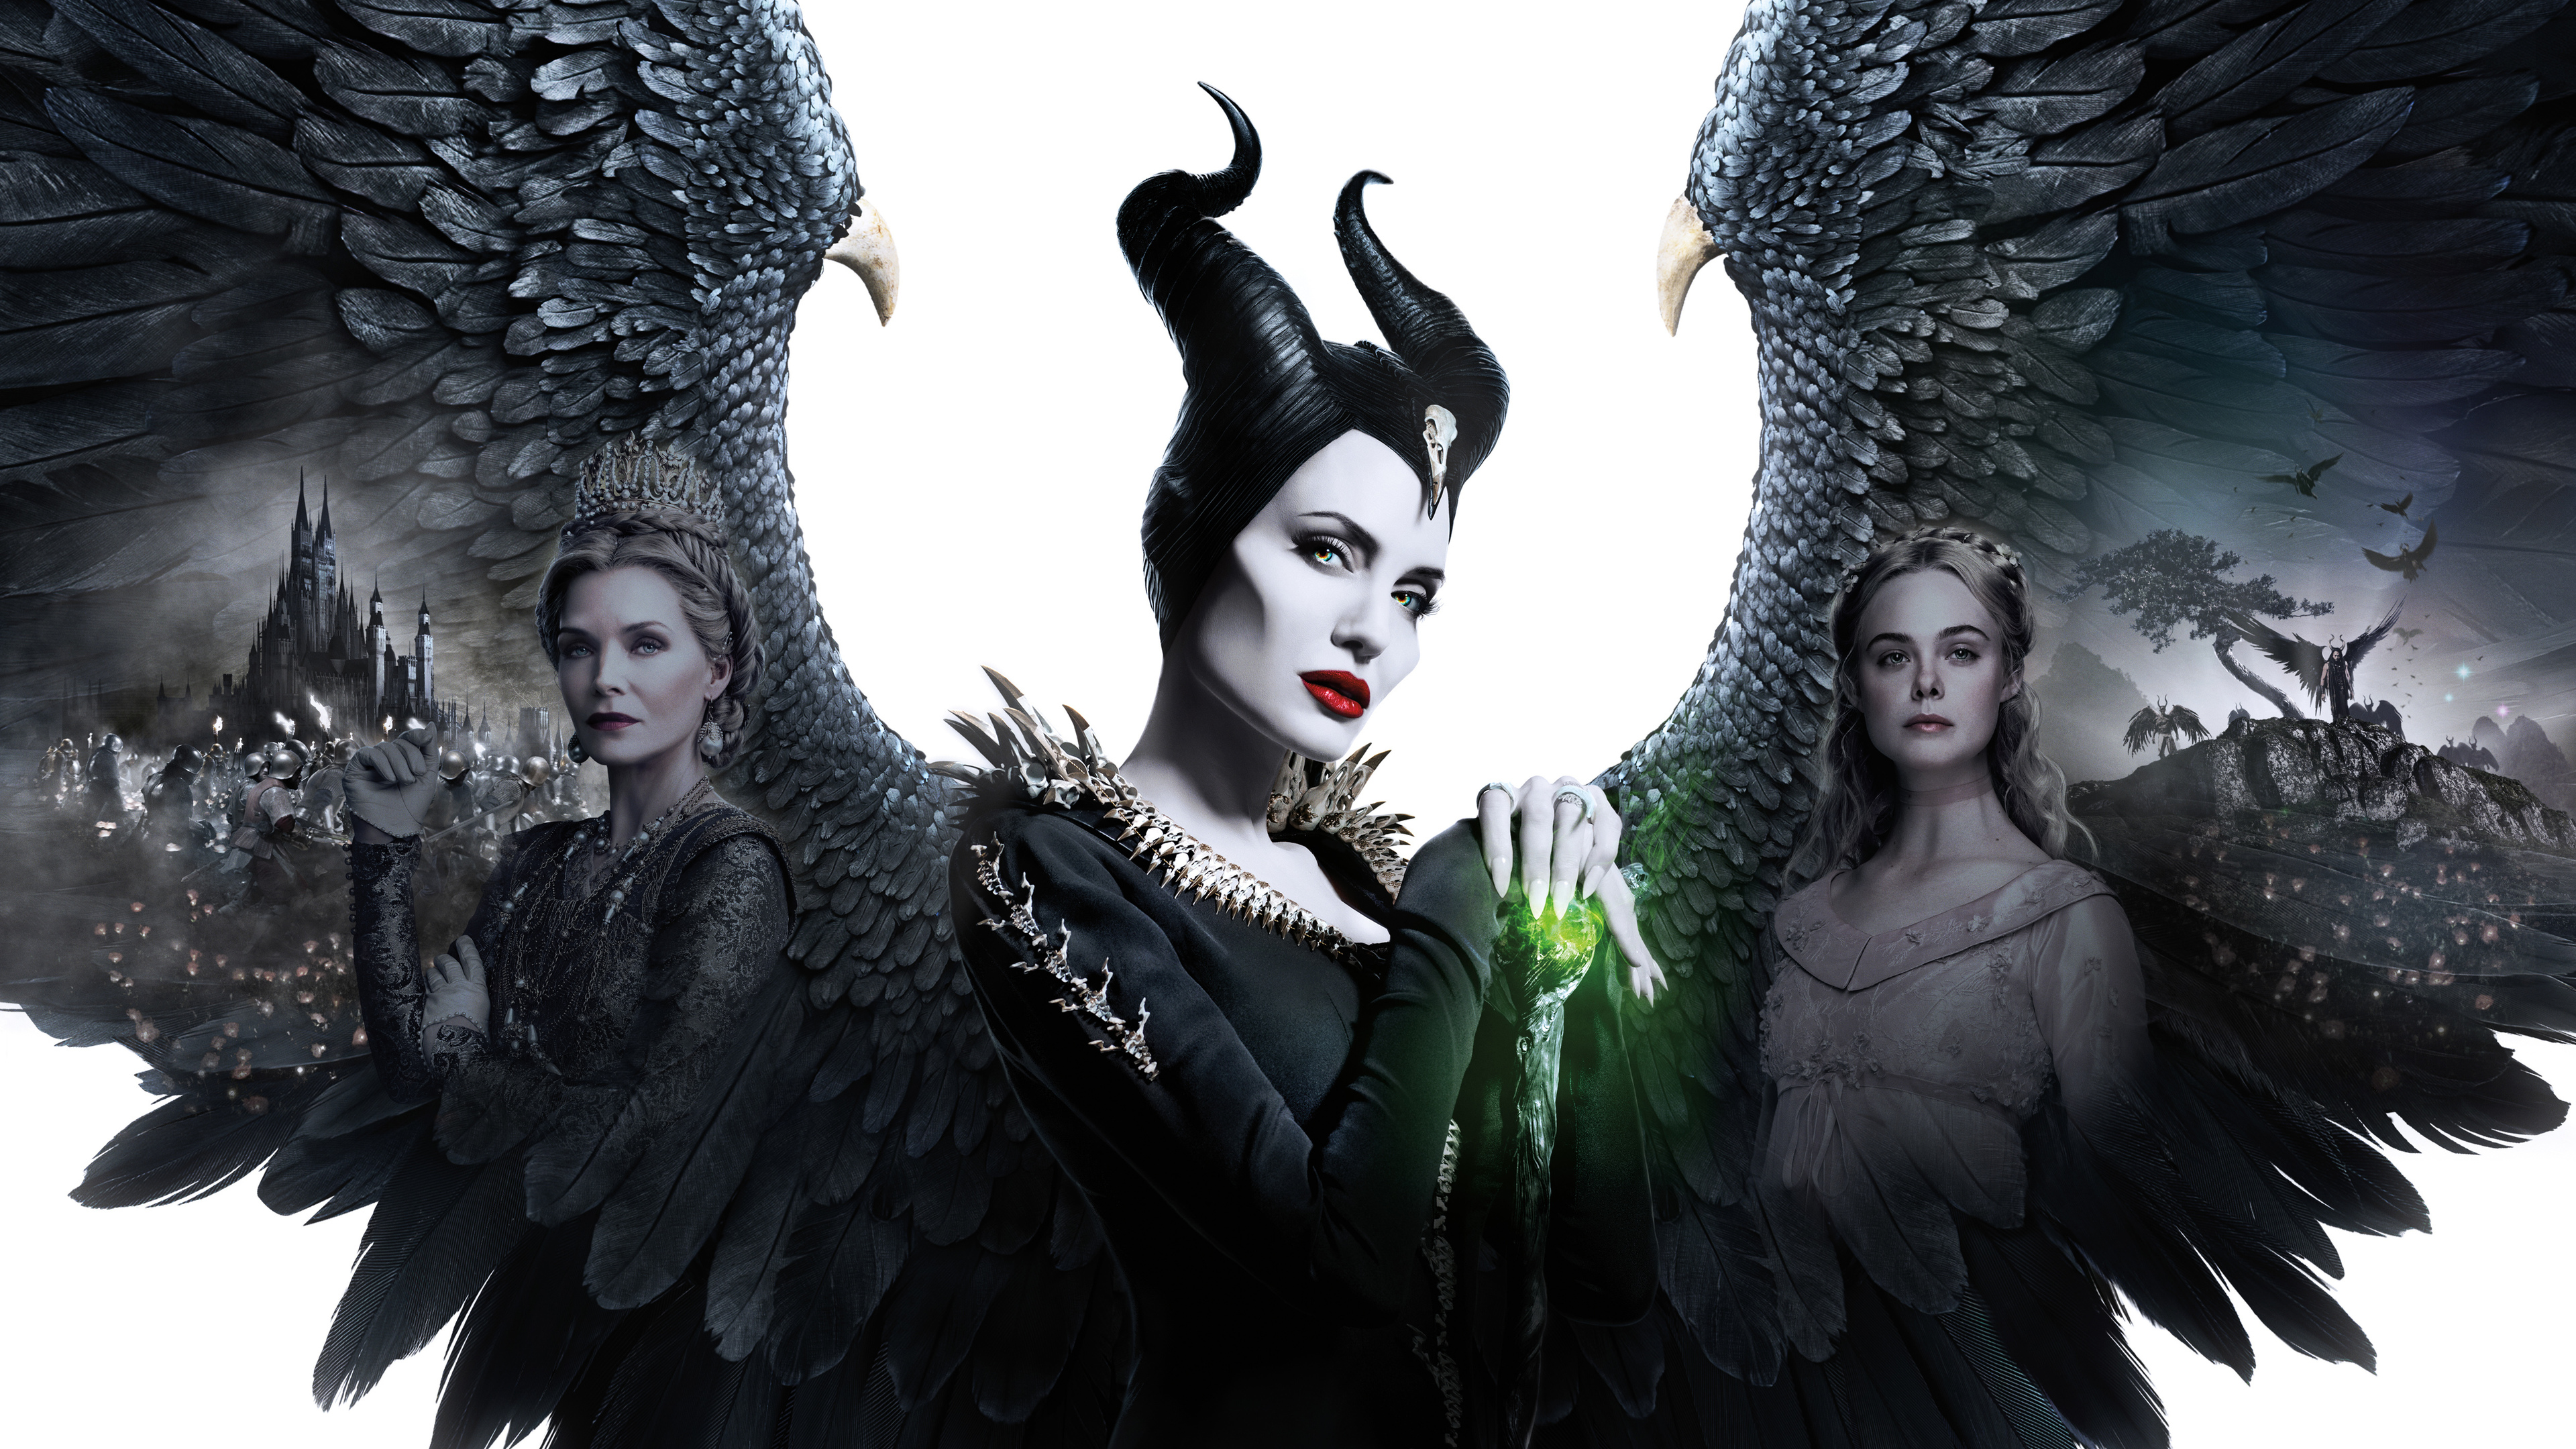 maleficent mistress of evil 2019 poster 1570919700 - Maleficent Mistress Of Evil 2019 Poster - movies wallpapers, maleficent wallpapers, maleficent mistress of evil wallpapers, hd-wallpapers, angelina jolie wallpapers, 5k wallpapers, 4k-wallpapers, 2019 movies wallpapers